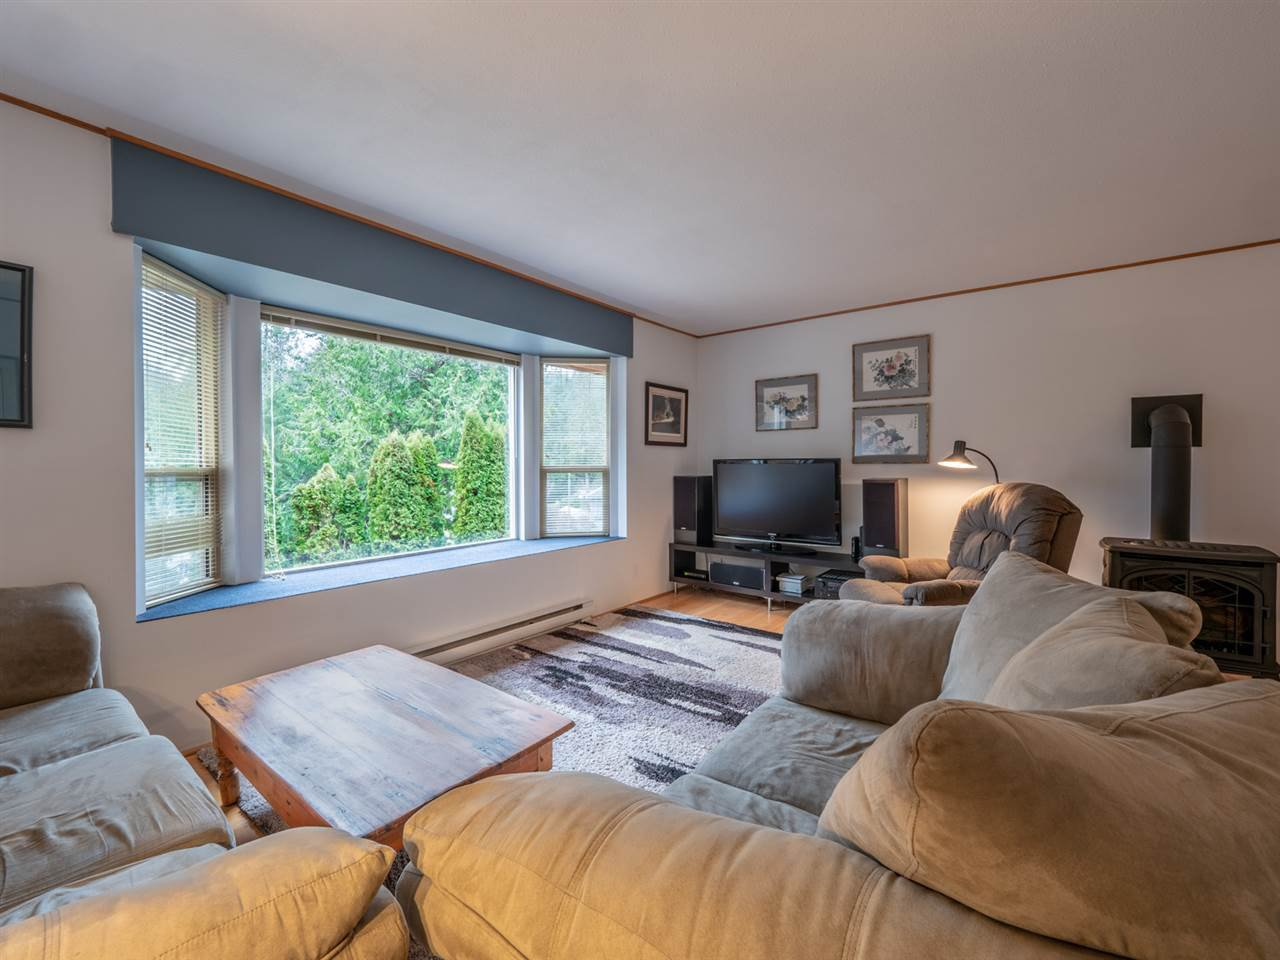 Photo 3: Photos: 12674 MERRILL Crescent in Pender Harbour: Pender Harbour Egmont House for sale (Sunshine Coast)  : MLS®# R2337589